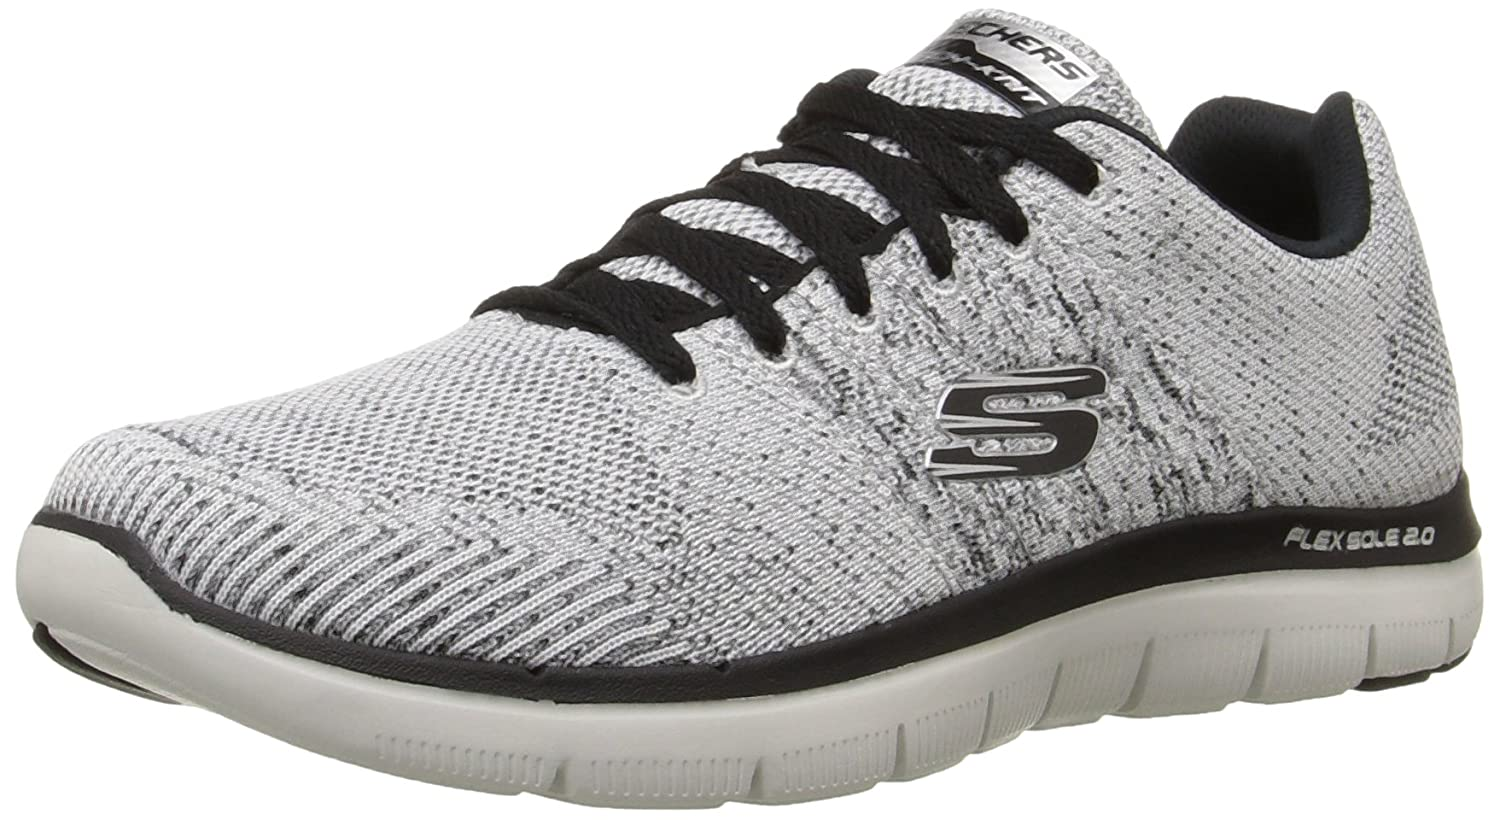 Tenis Flex Advantage 2.0 Skechers 52180NVBL Zapatos para